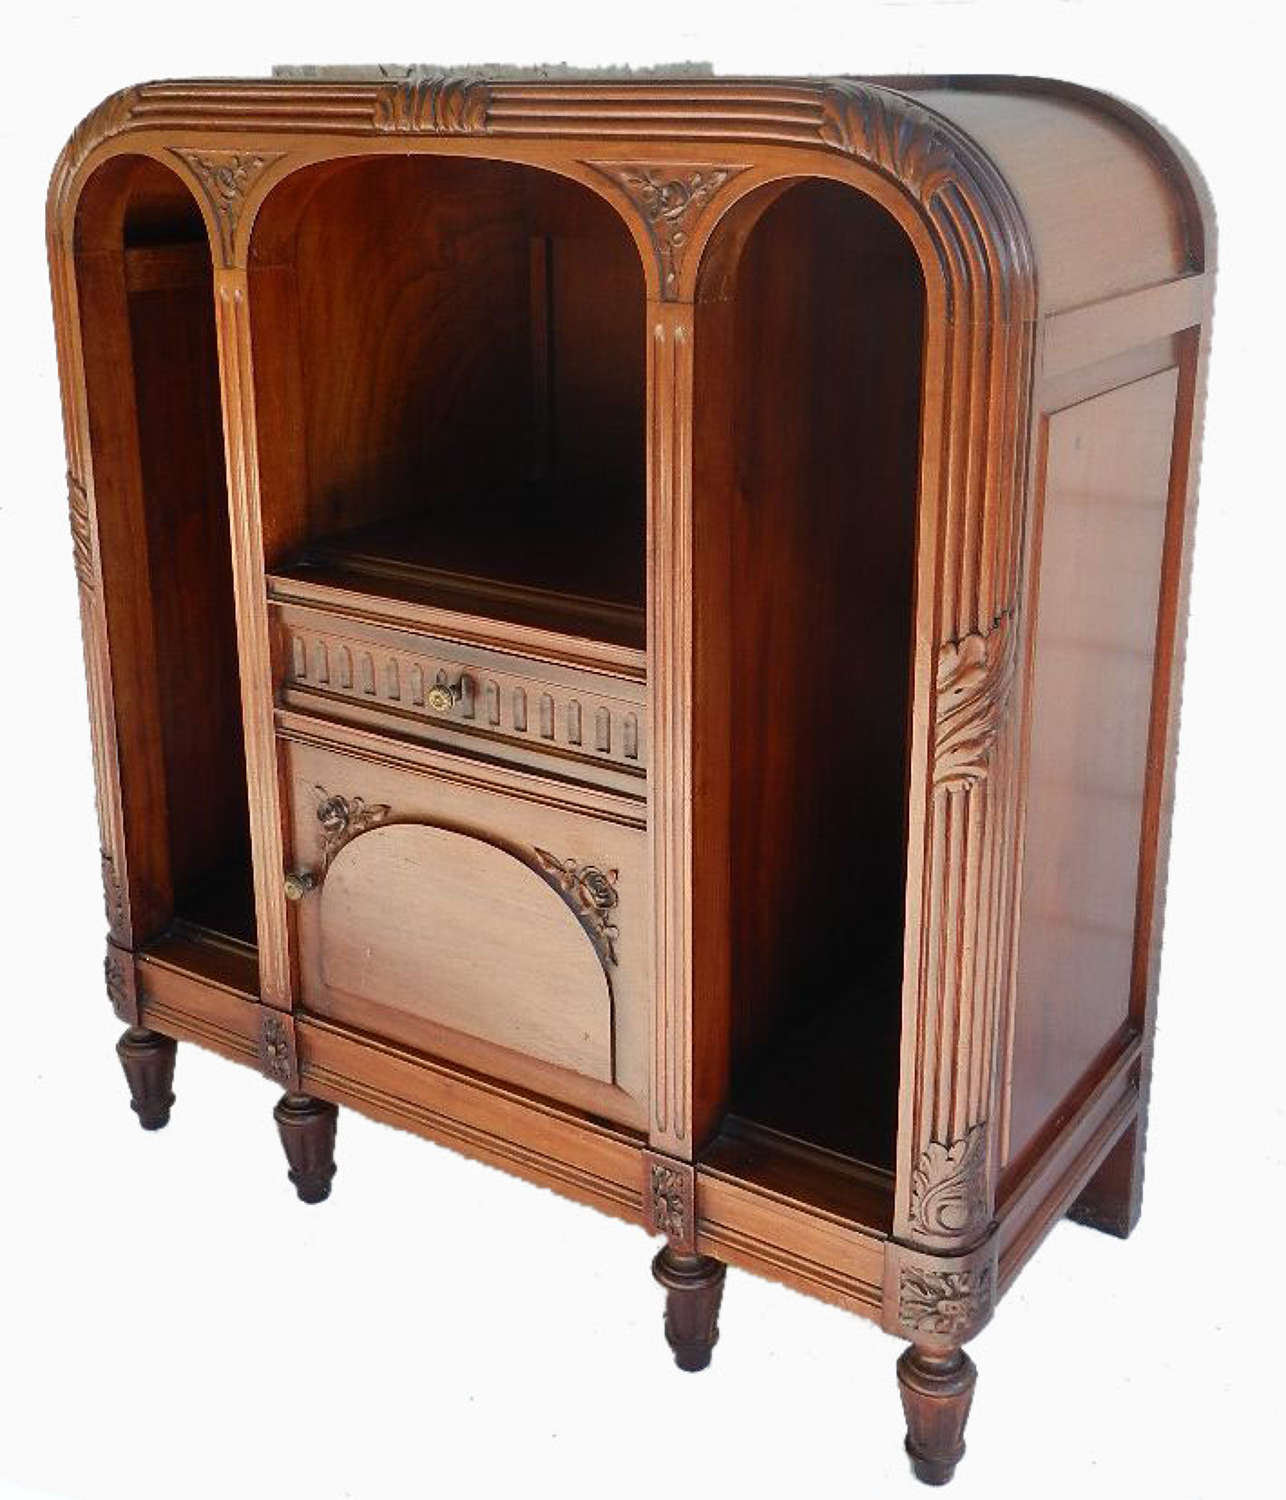 French Art Deco c1920 Side Cabinet Bedside Table Cupboard Nightstand Louis XVI revival